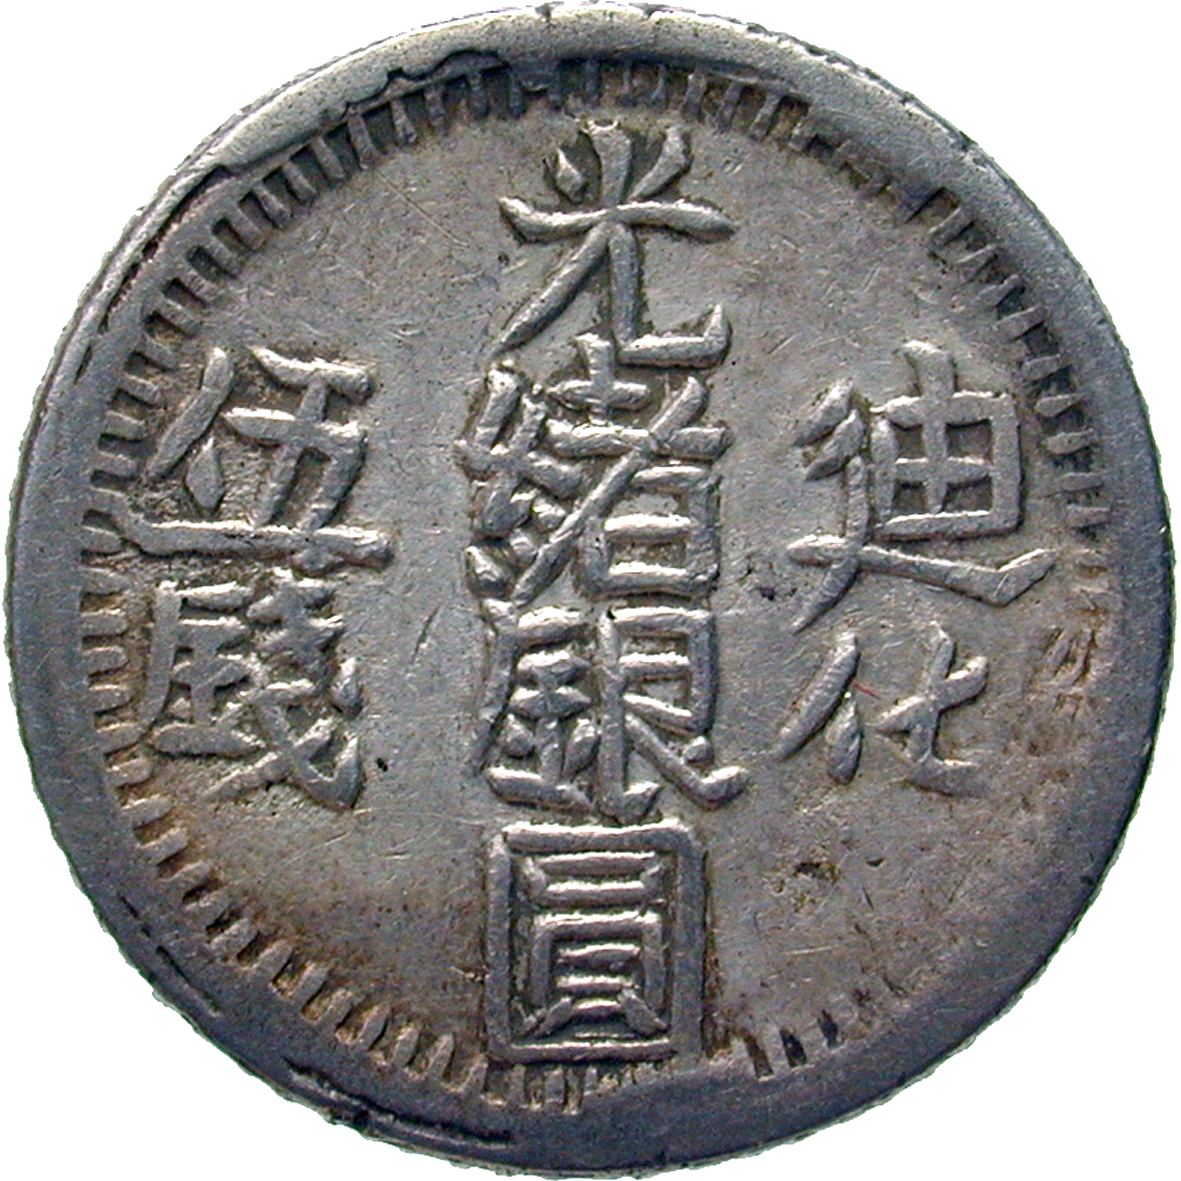 Republic of China, Province of Xinjiang, 5 Miscals, 1325 Hijrah (obverse)